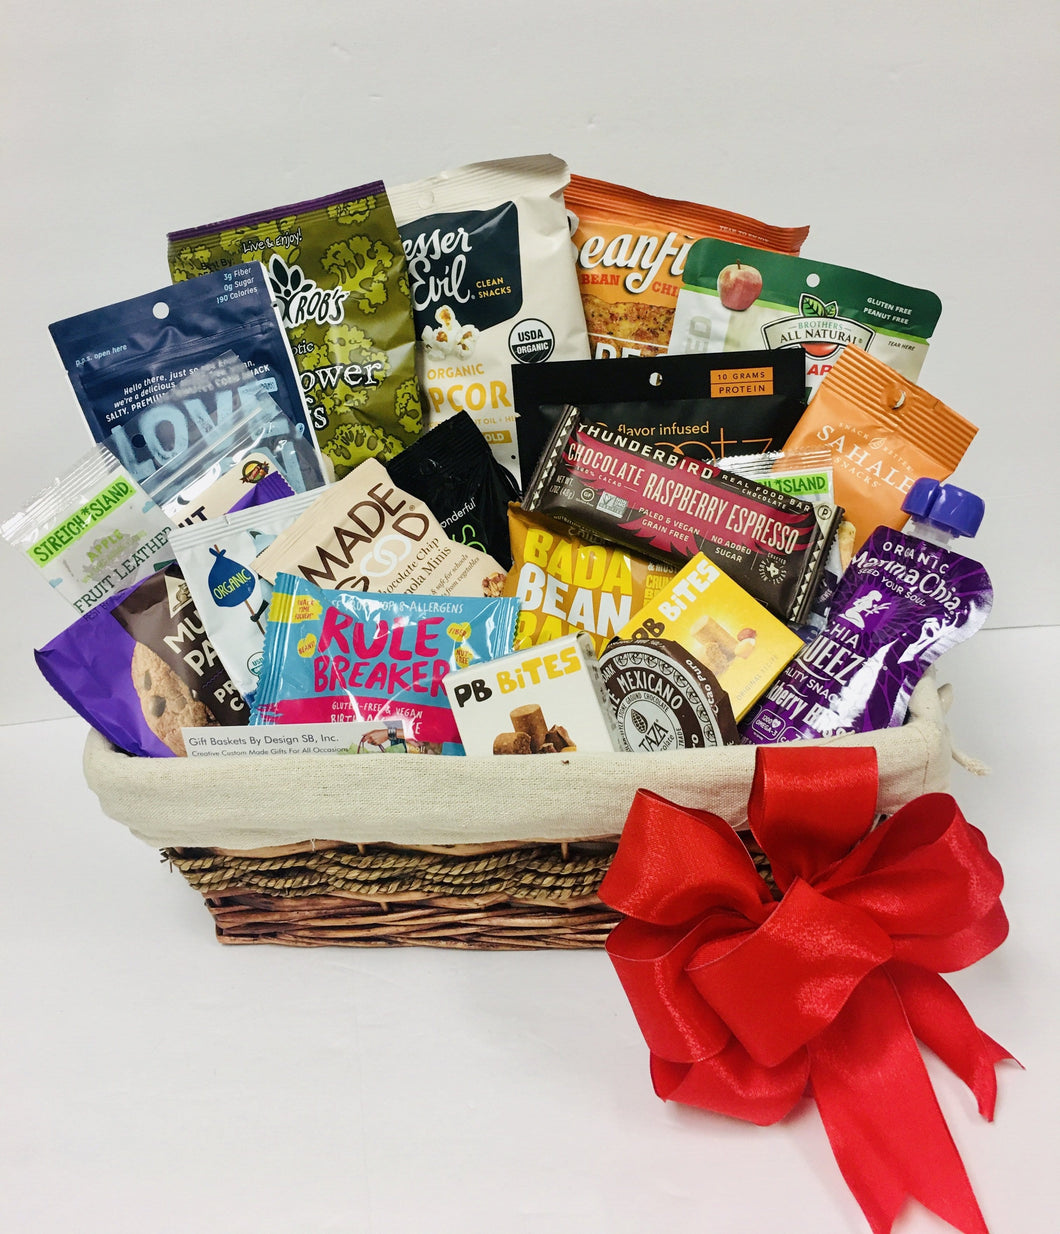 Gluten Free Dairy Free-Supreme 3 Size* New - Gift Baskets By Design SB, Inc.